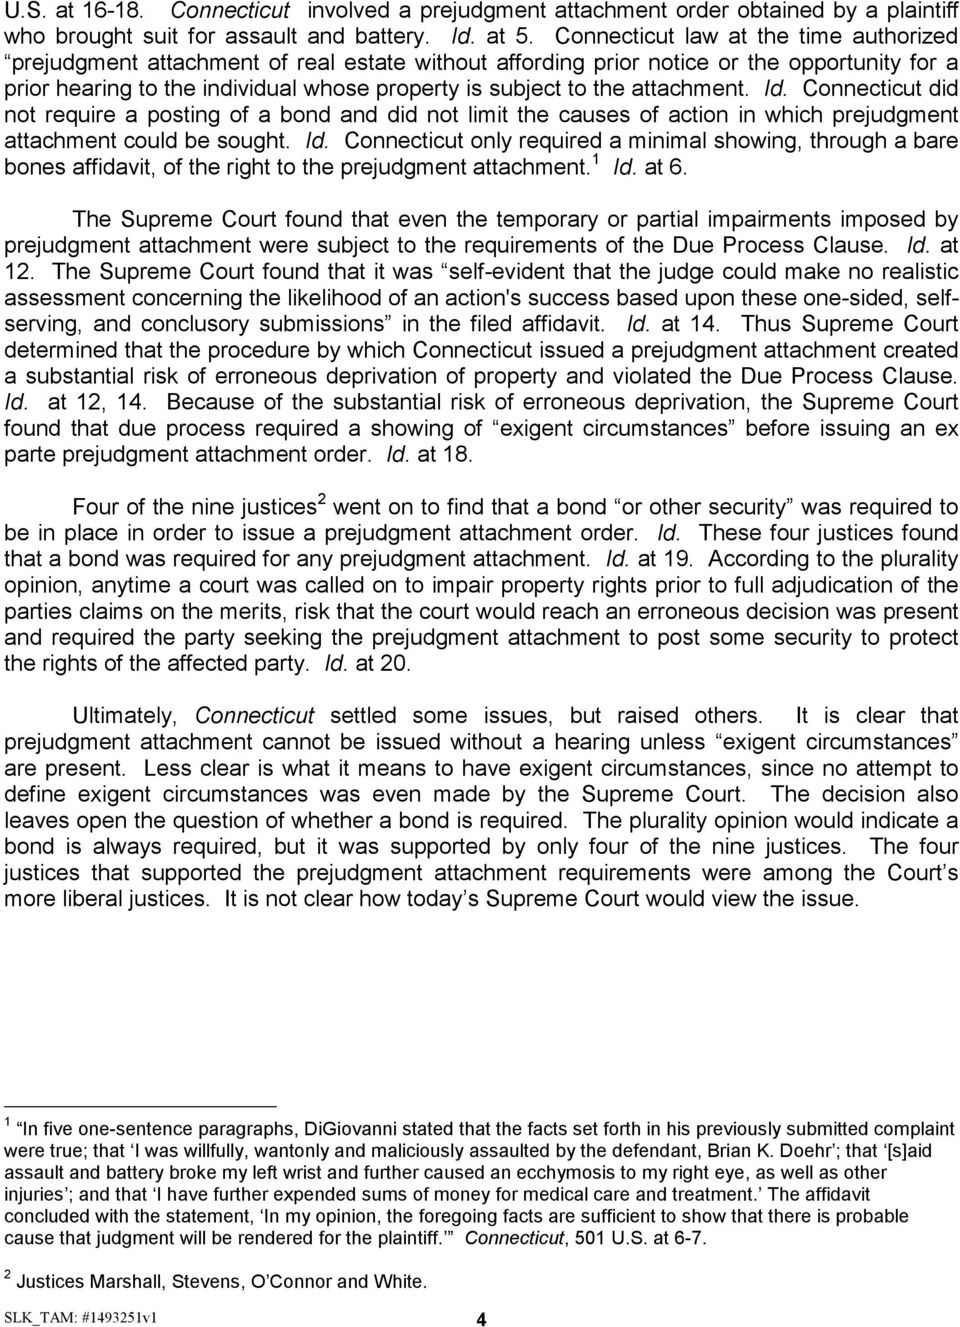 attachment. Id. Connecticut did not require a posting of a bond and did not limit the causes of action in which prejudgment attachment could be sought. Id. Connecticut only required a minimal showing, through a bare bones affidavit, of the right to the prejudgment attachment.